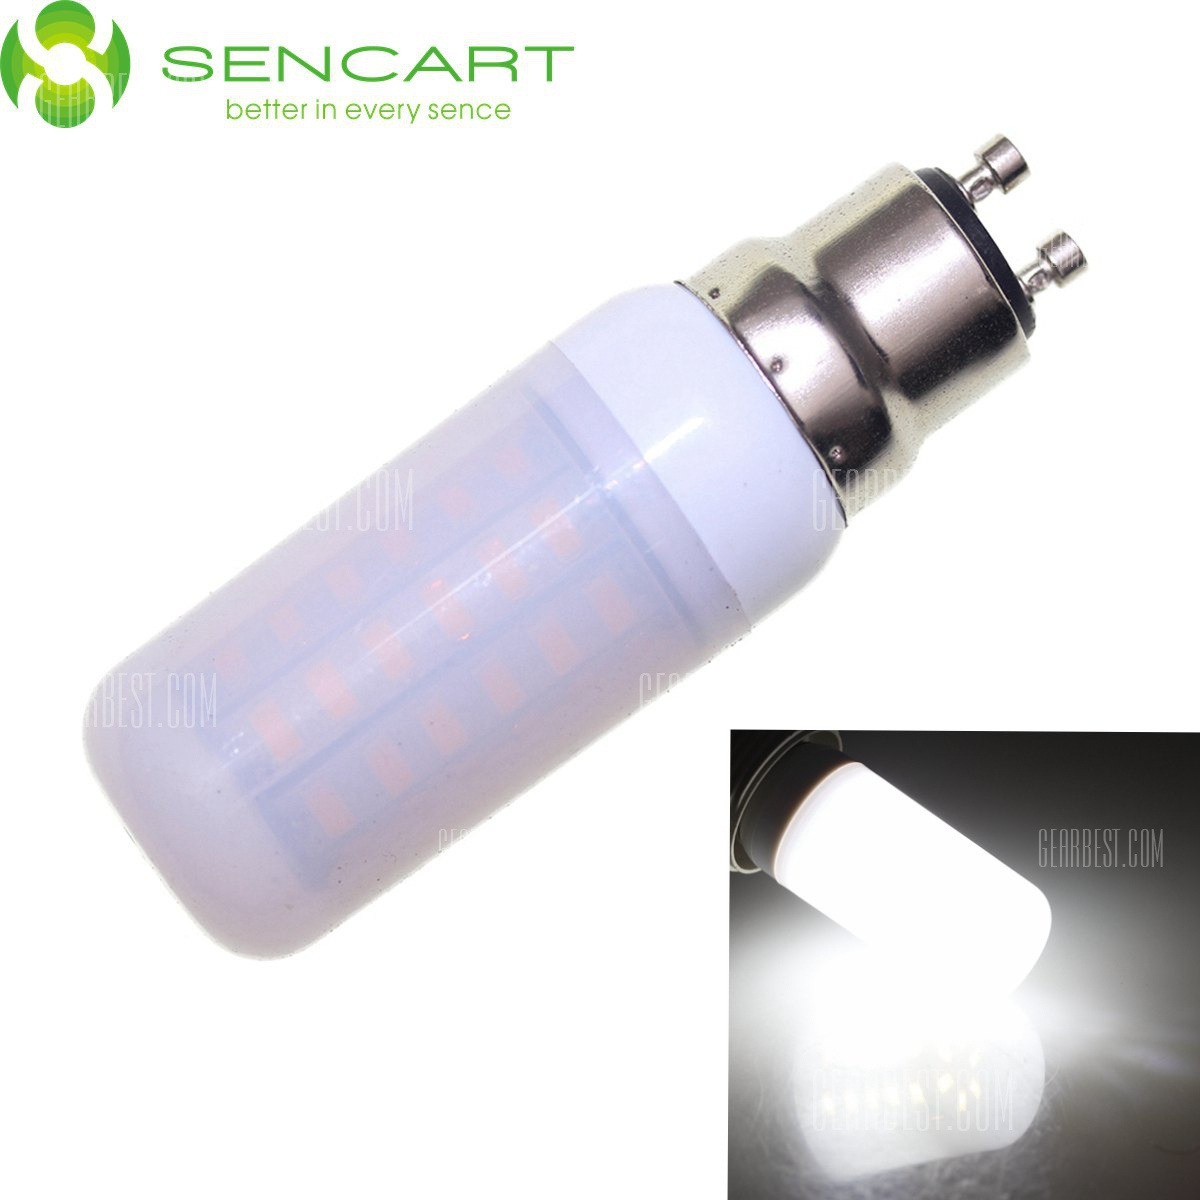 Sencart GU10 12W SMD - 5730 56 LED Lampara Luz LED blanca regulable 2200LM CA 110 - 240 V caso mate